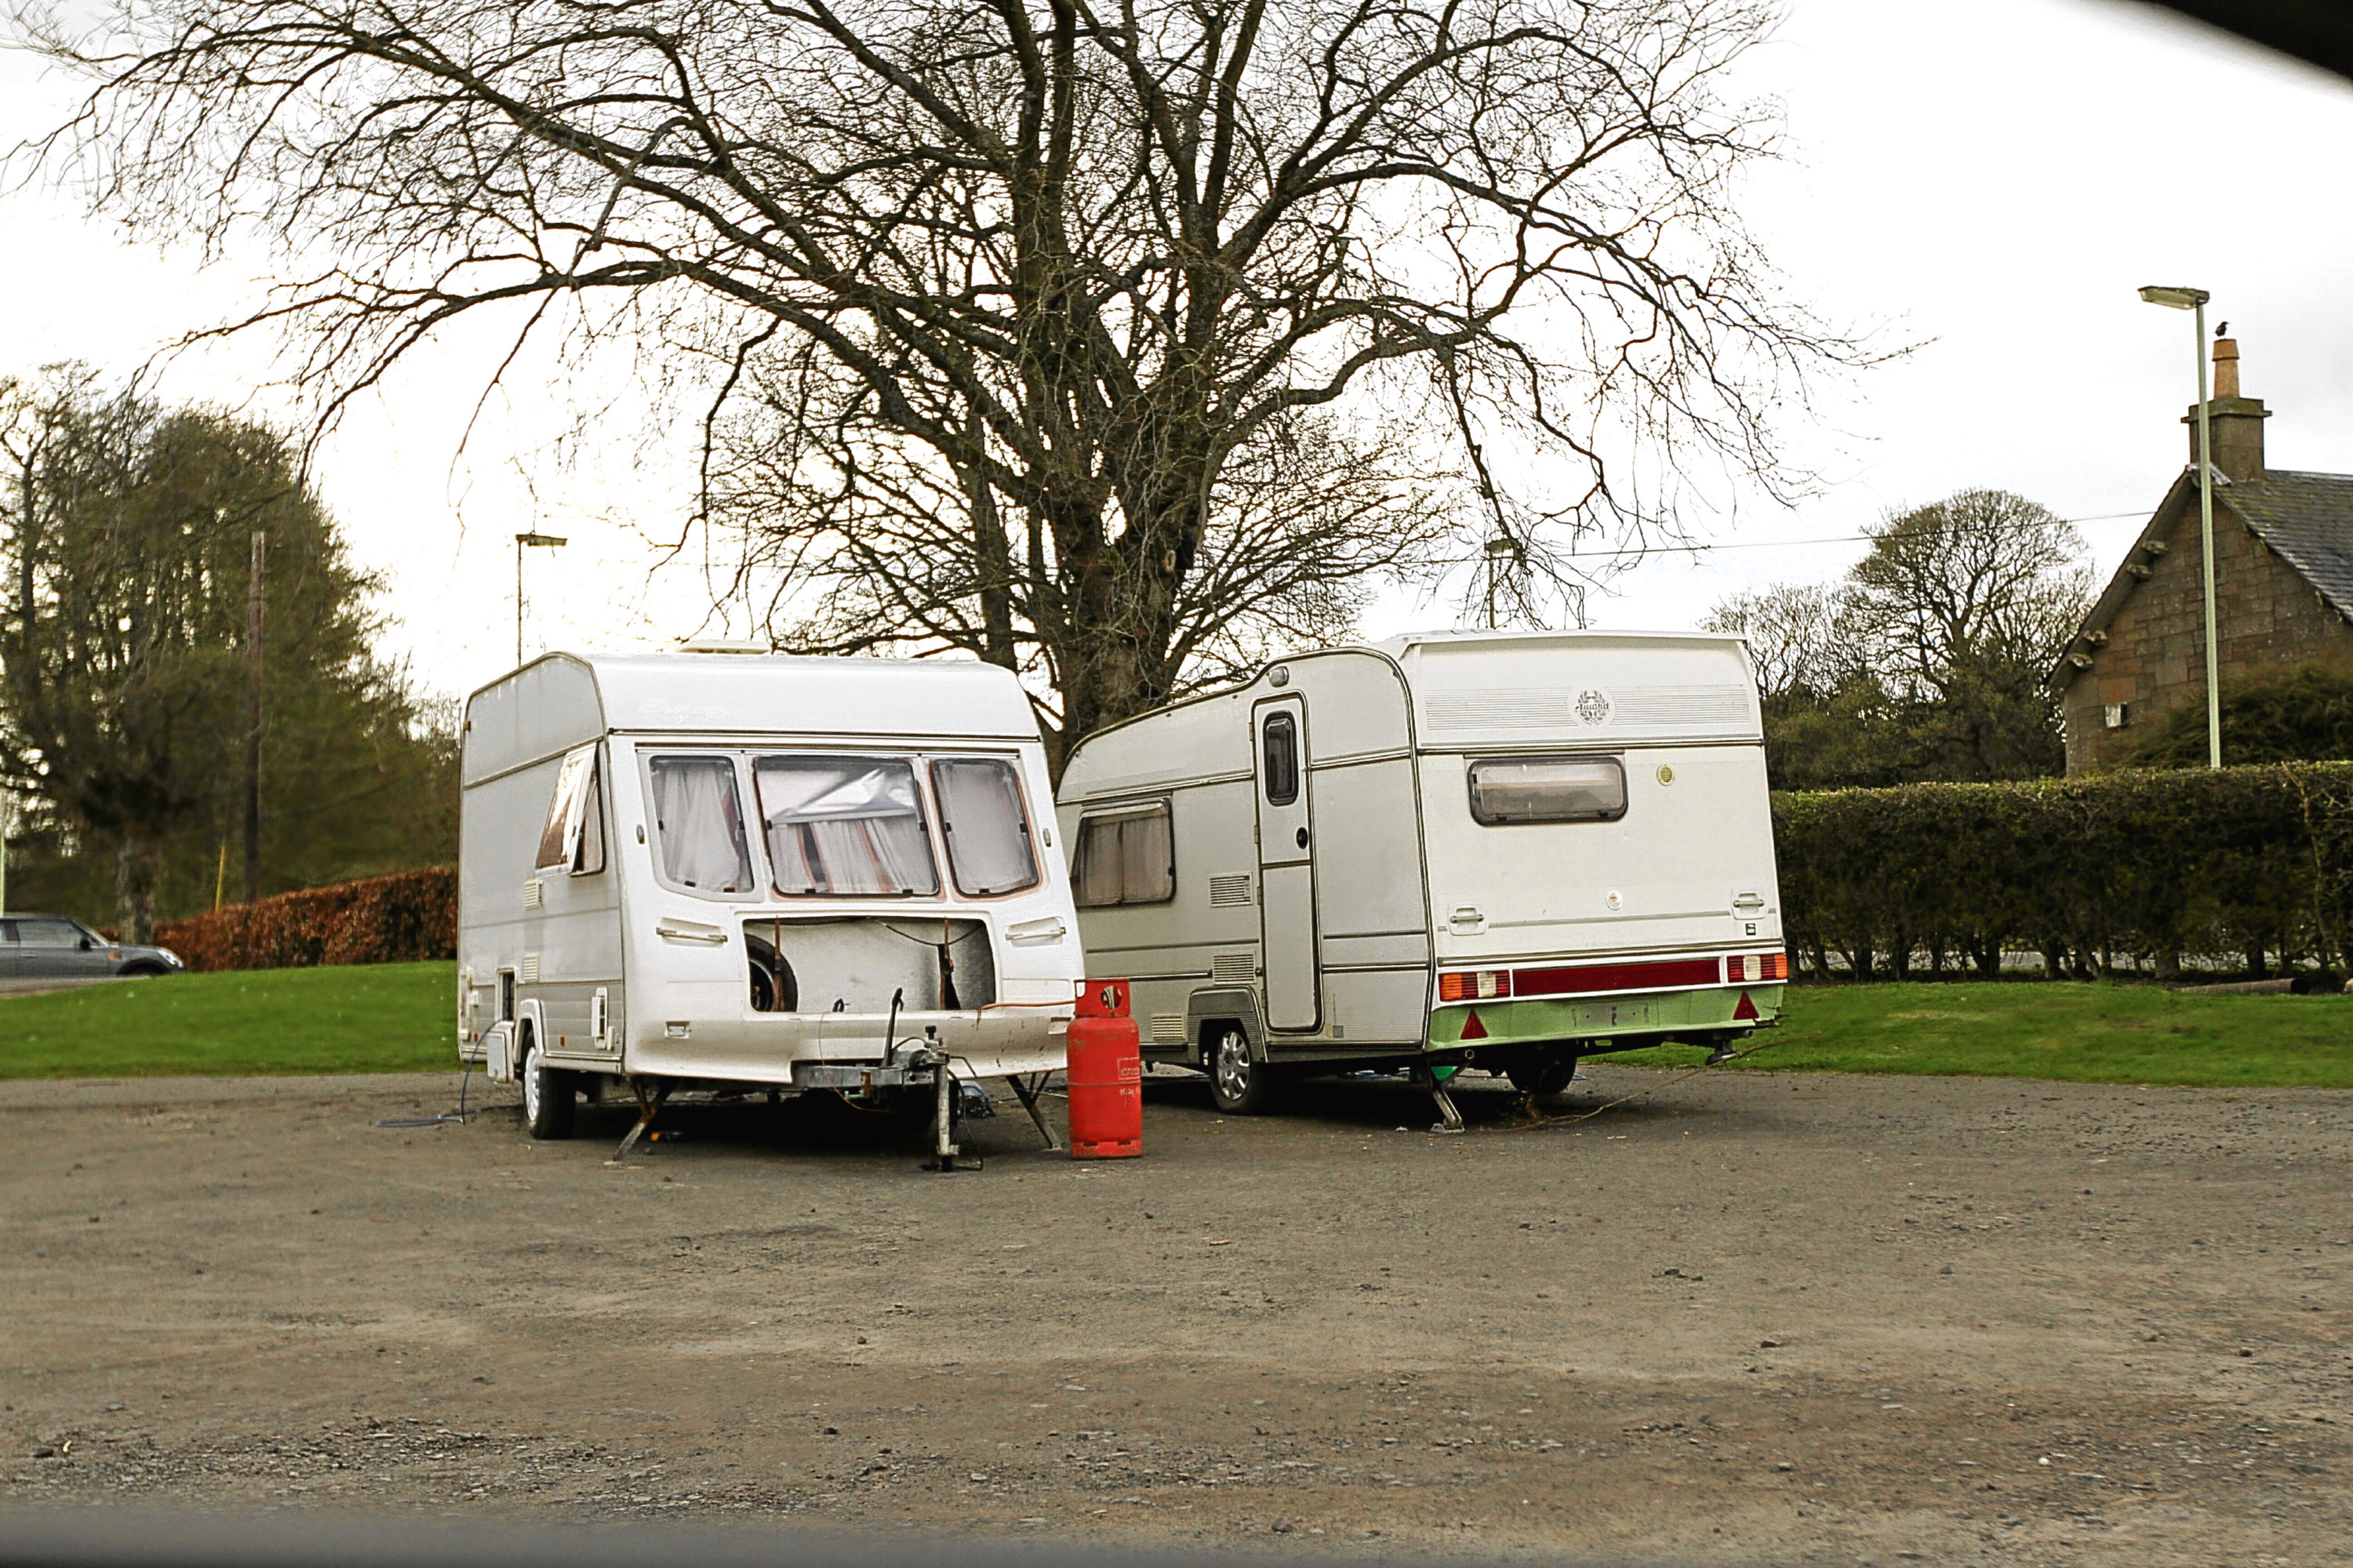 Dundee City Council has said it is investigating after two caravans appeared in the car park at Caird Park.